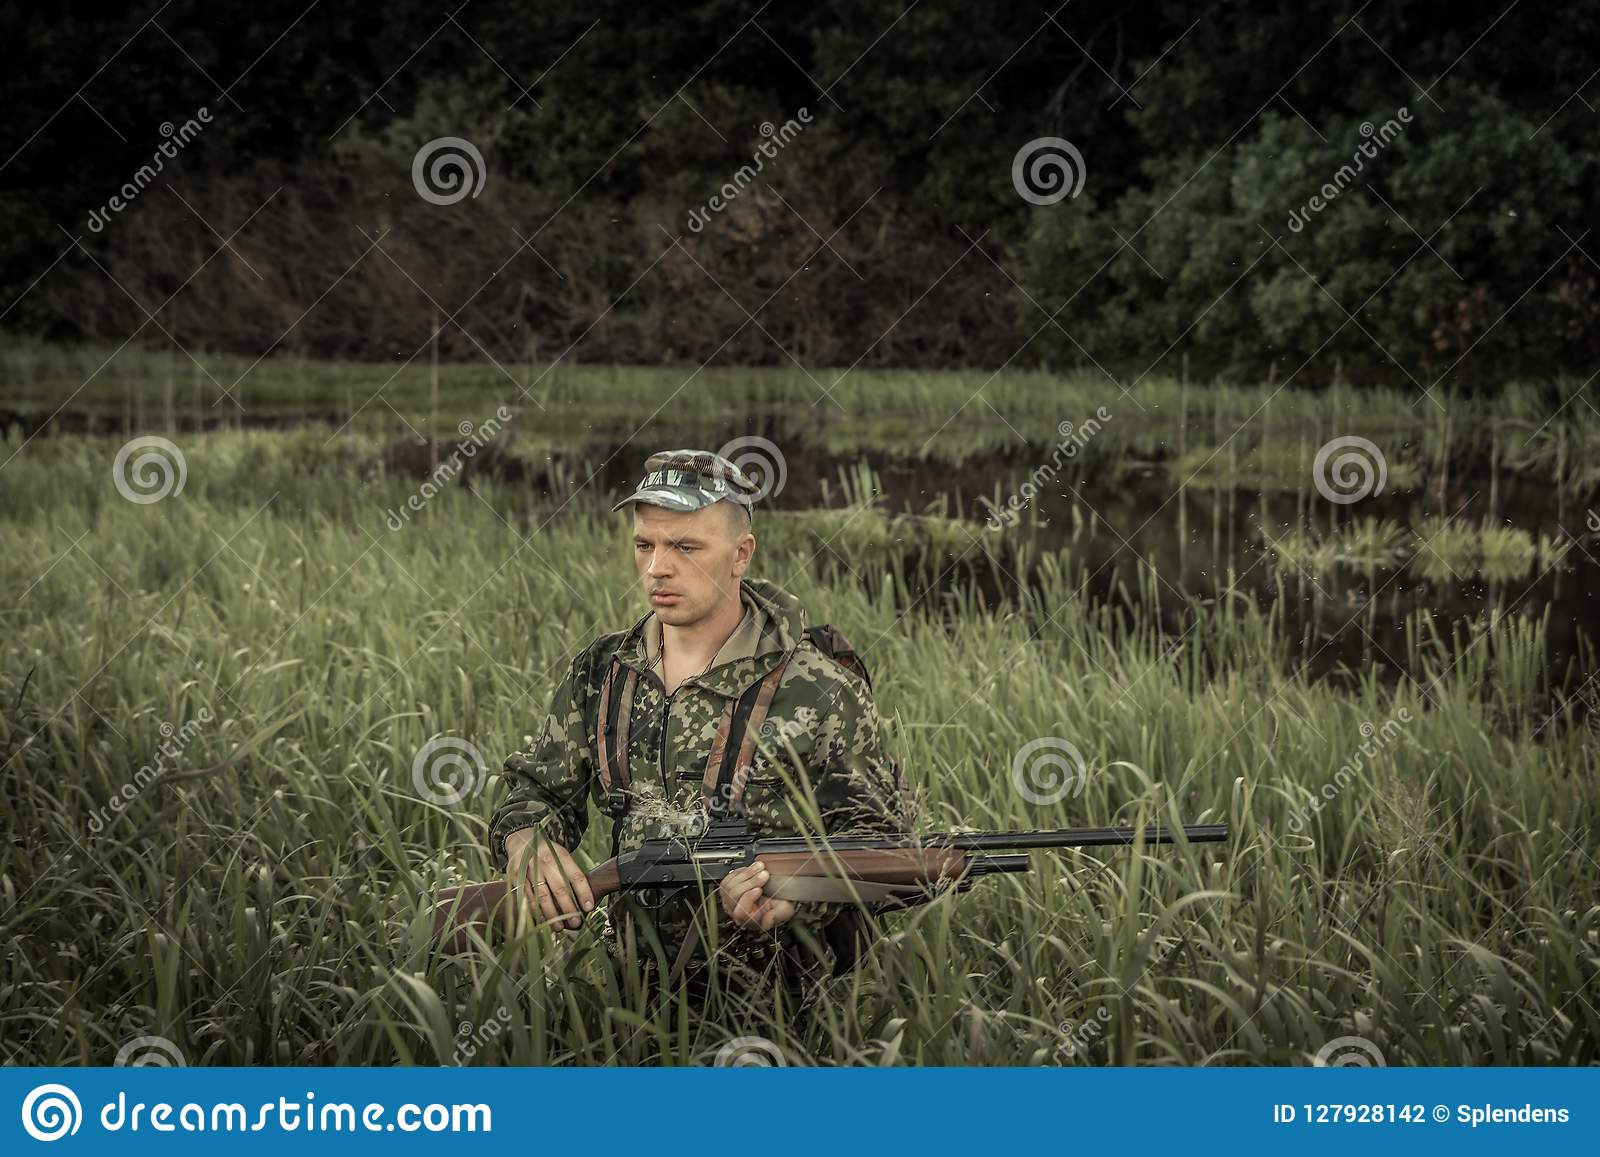 Hunting hunter brutal man breaking through swamp tall grass during hunting season